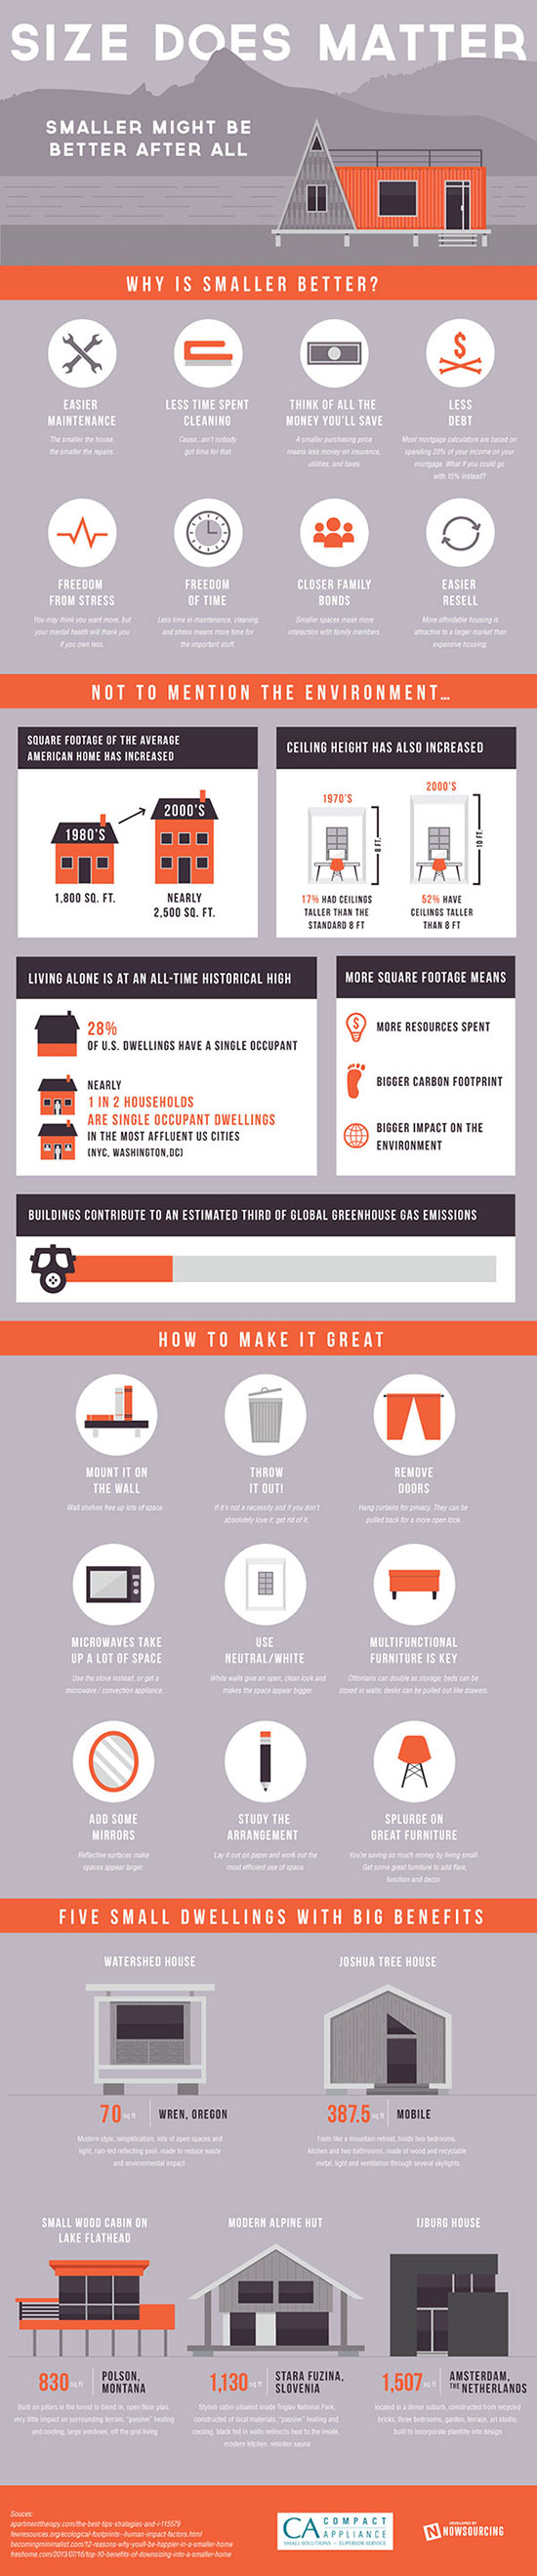 compact_living_infographic_550